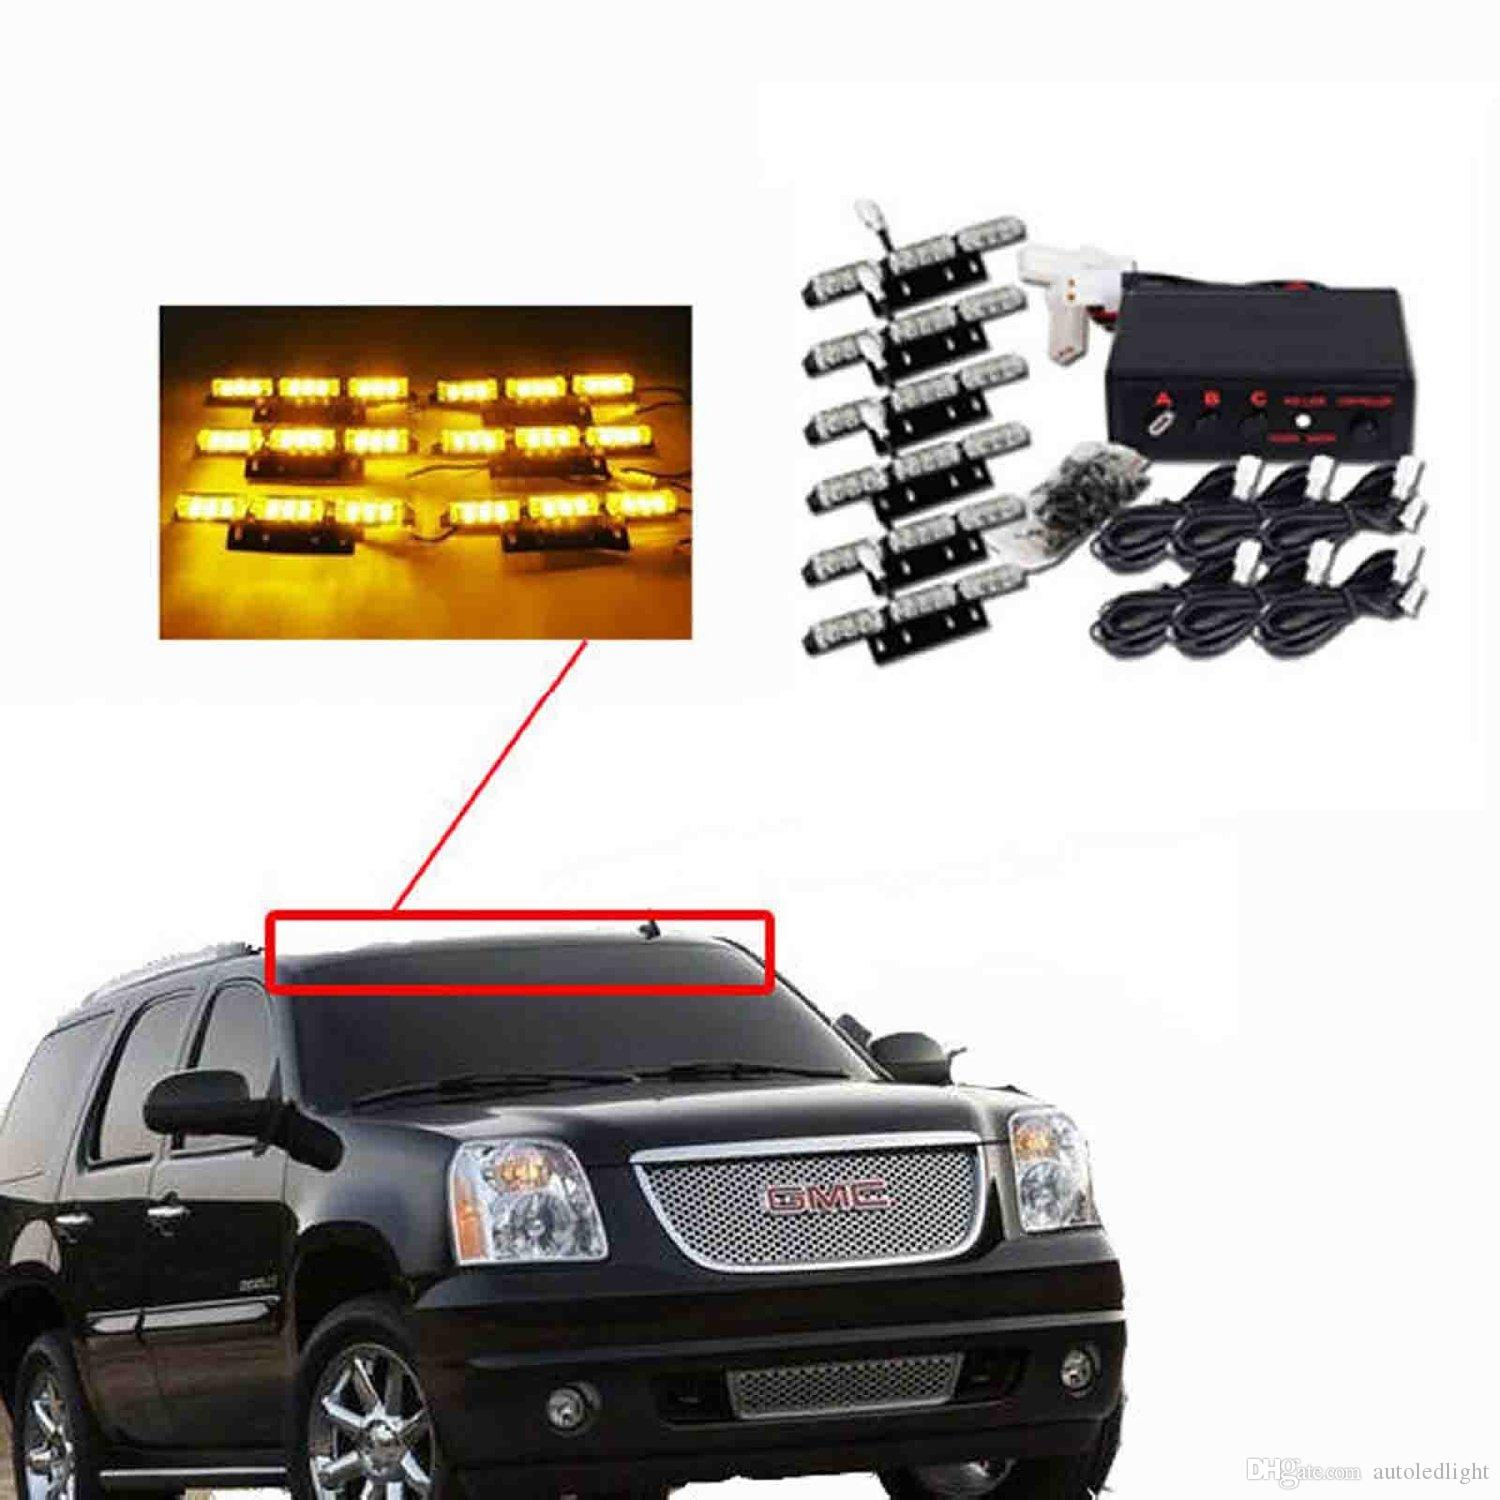 Amber/White/White &Amber 54 LED Emergency Vehicle Strobe Flash Lights for Front Deck/Grille or Rear light flash